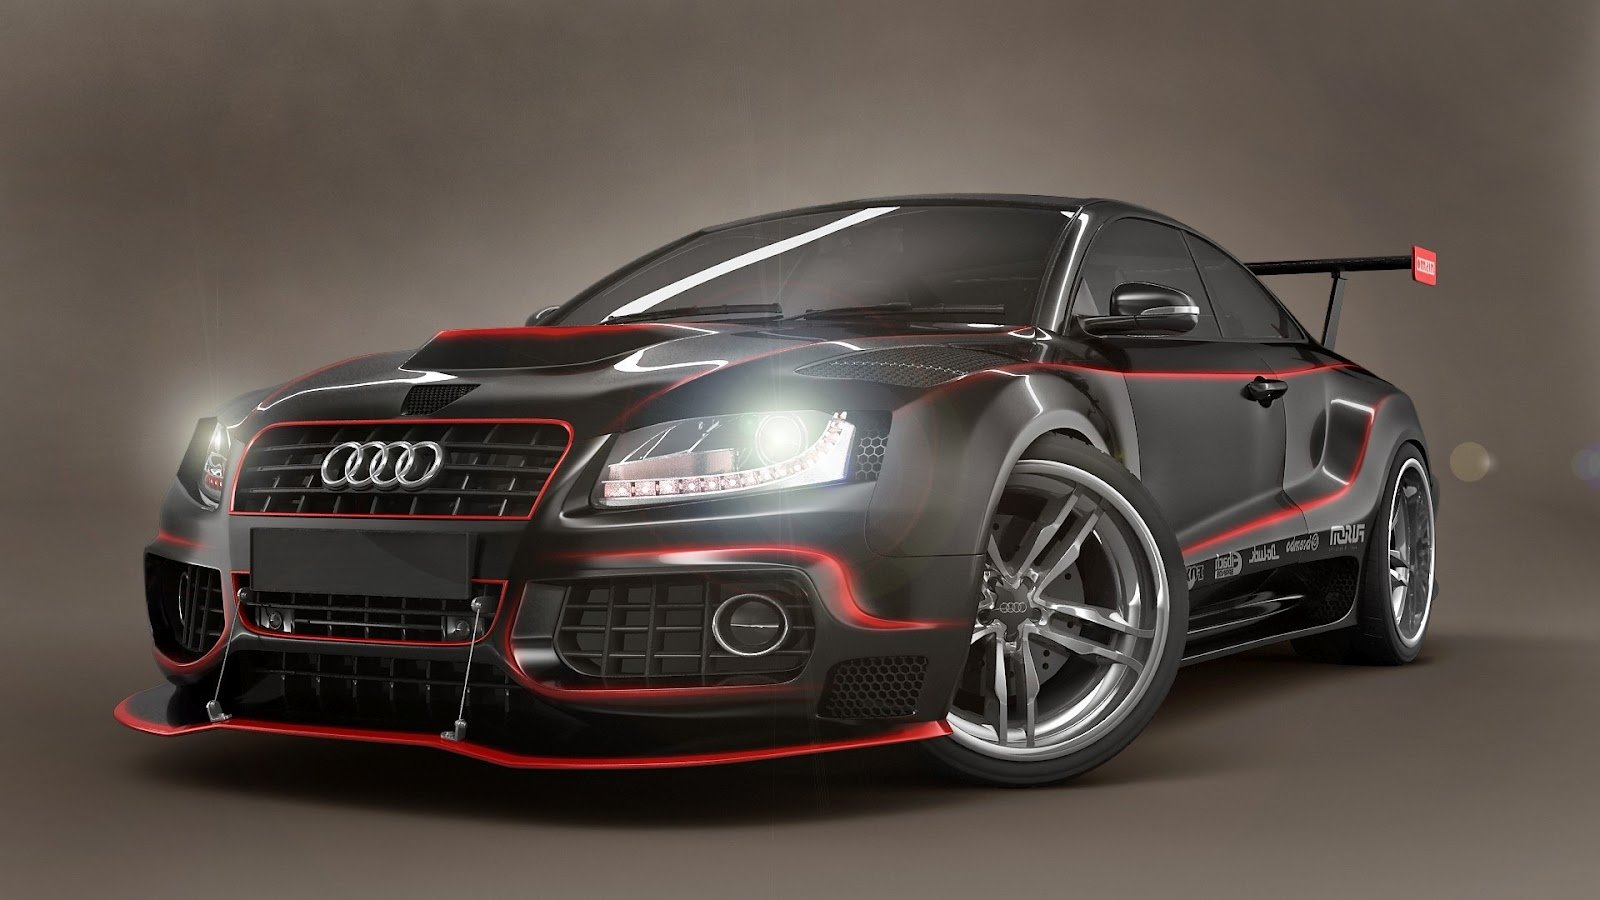 Latest Audi Cars Wallpapers Hd Mobile Wallpapers Free Download